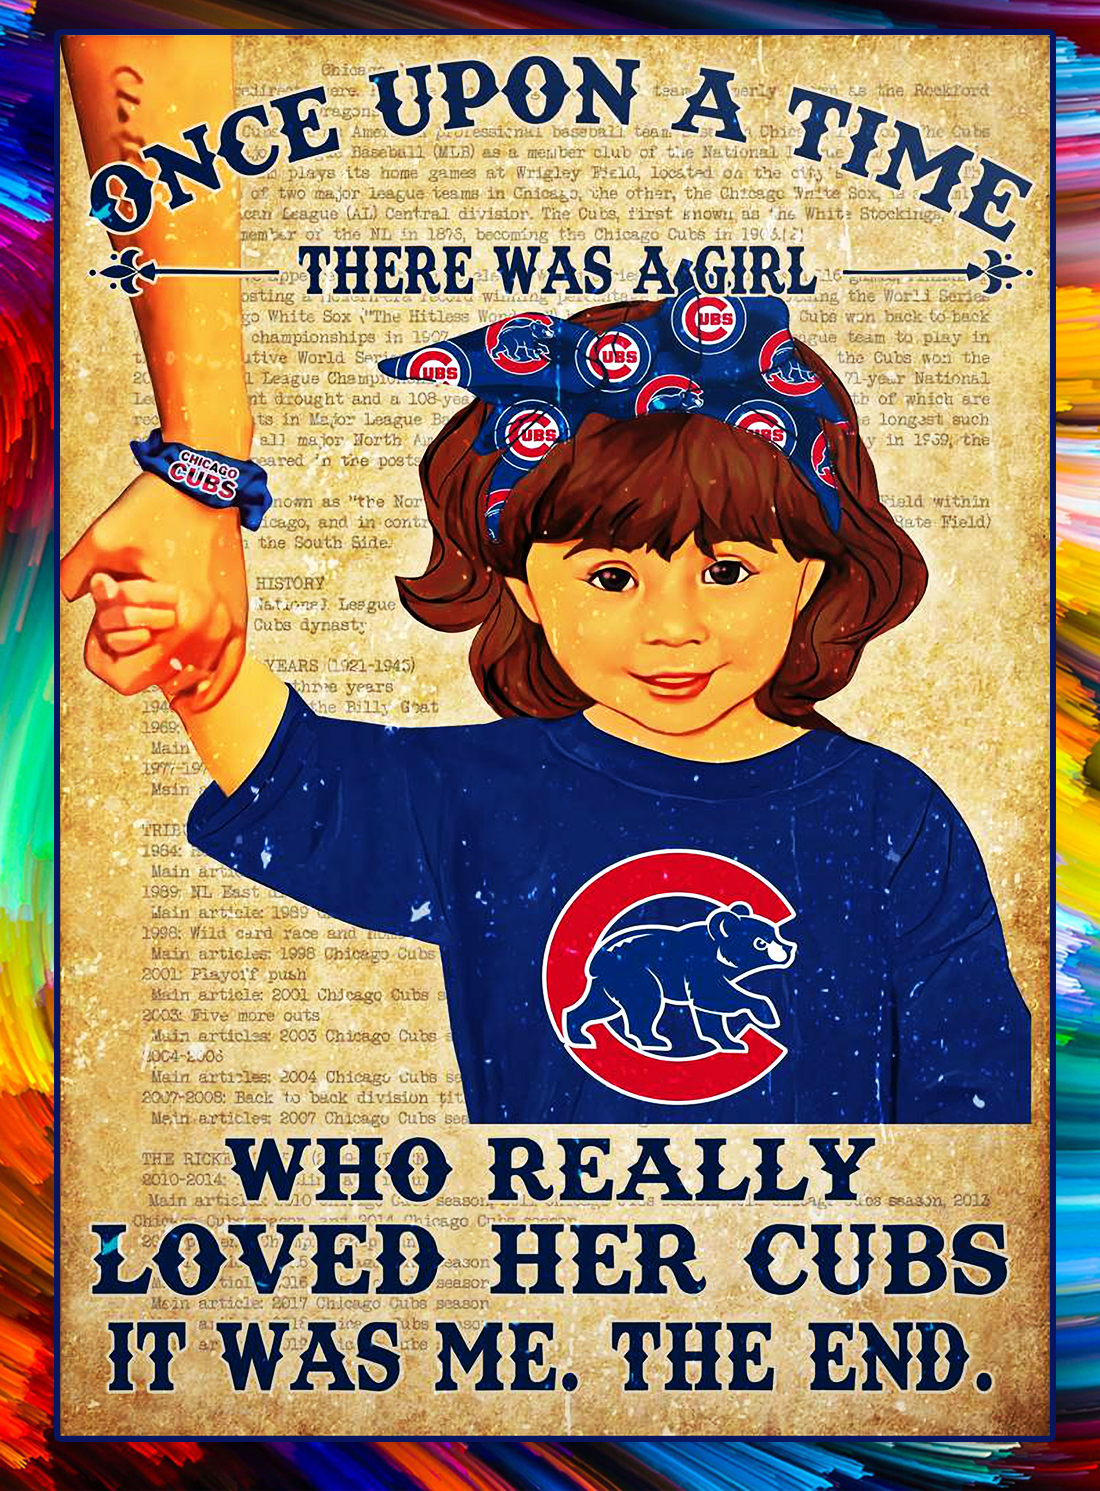 Once upon a time there was a girl who really loved her cubs poster - Brown hair